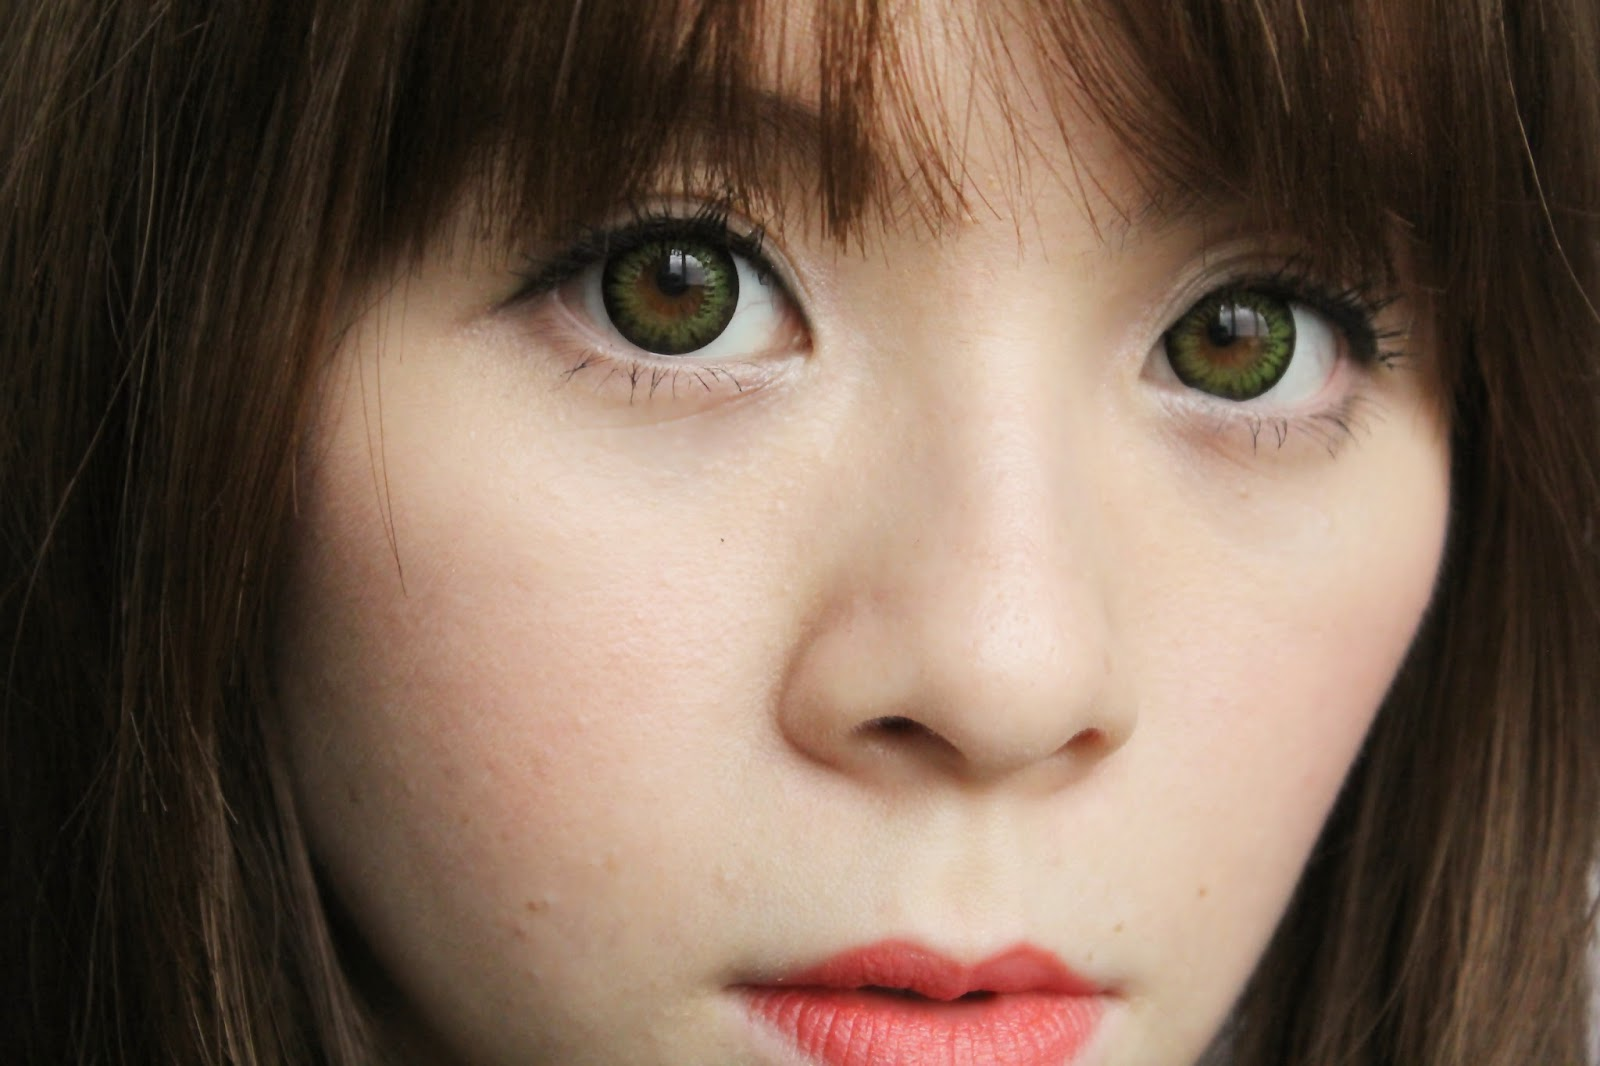 Girl with green contact lens